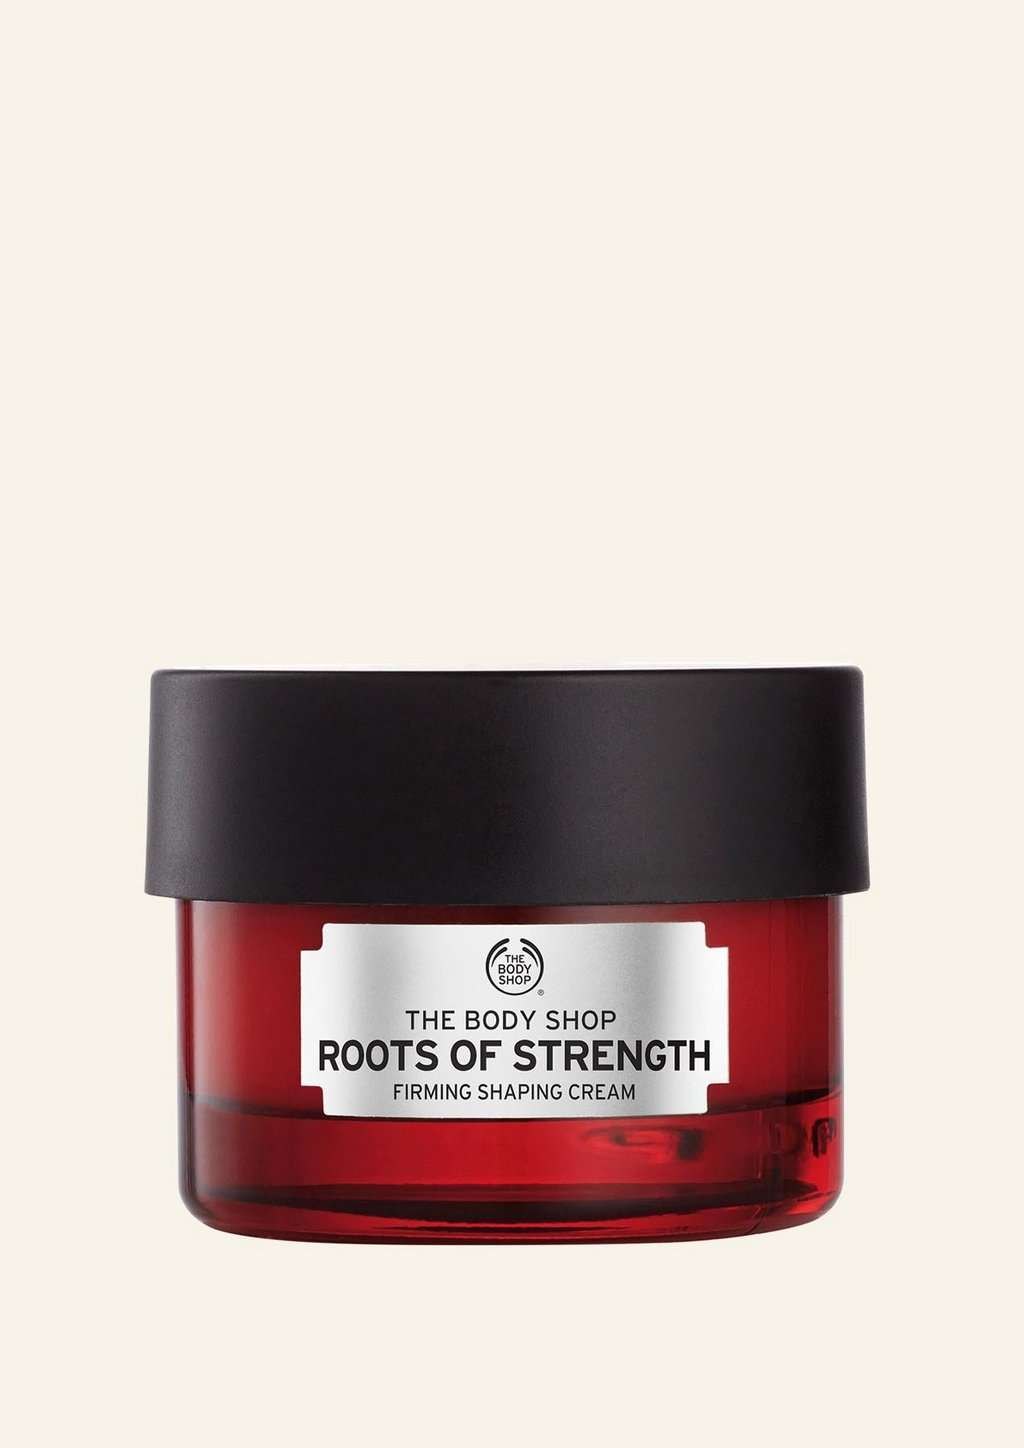 Roots of strength cream